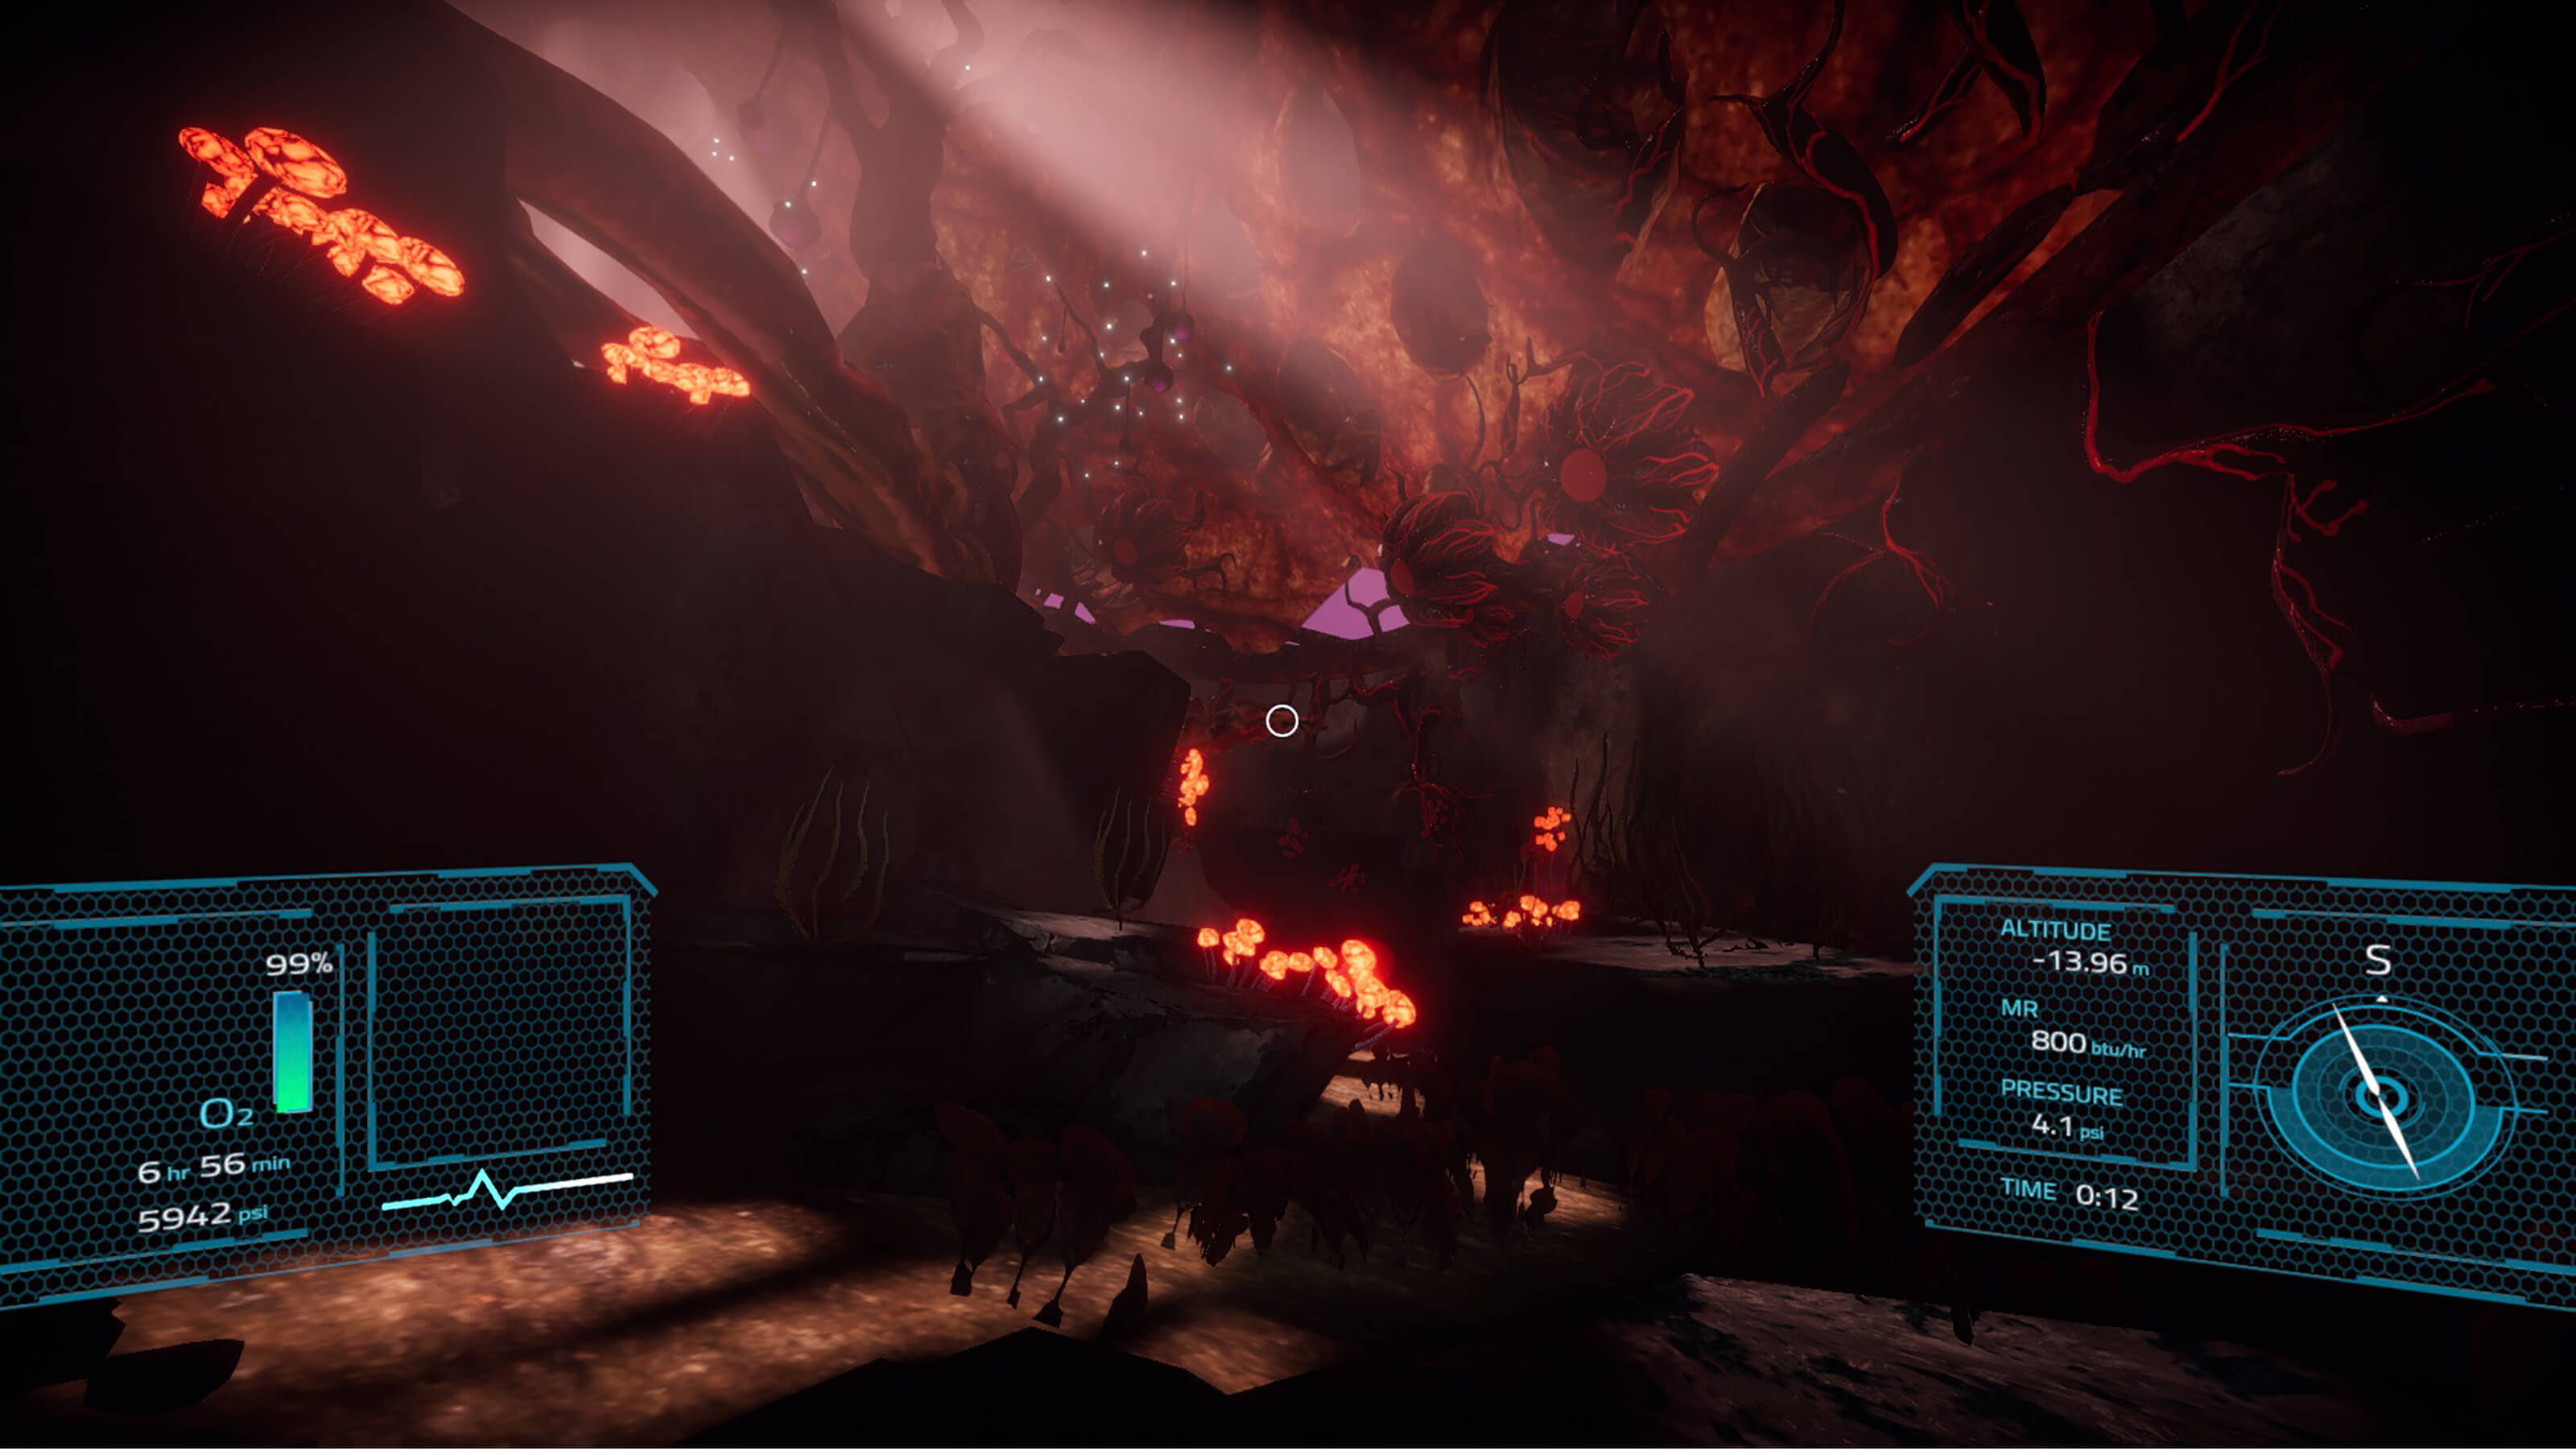 A glowing alien landscape full of strange mushrooms, trees, and foliage with the player's HUD layer on top.